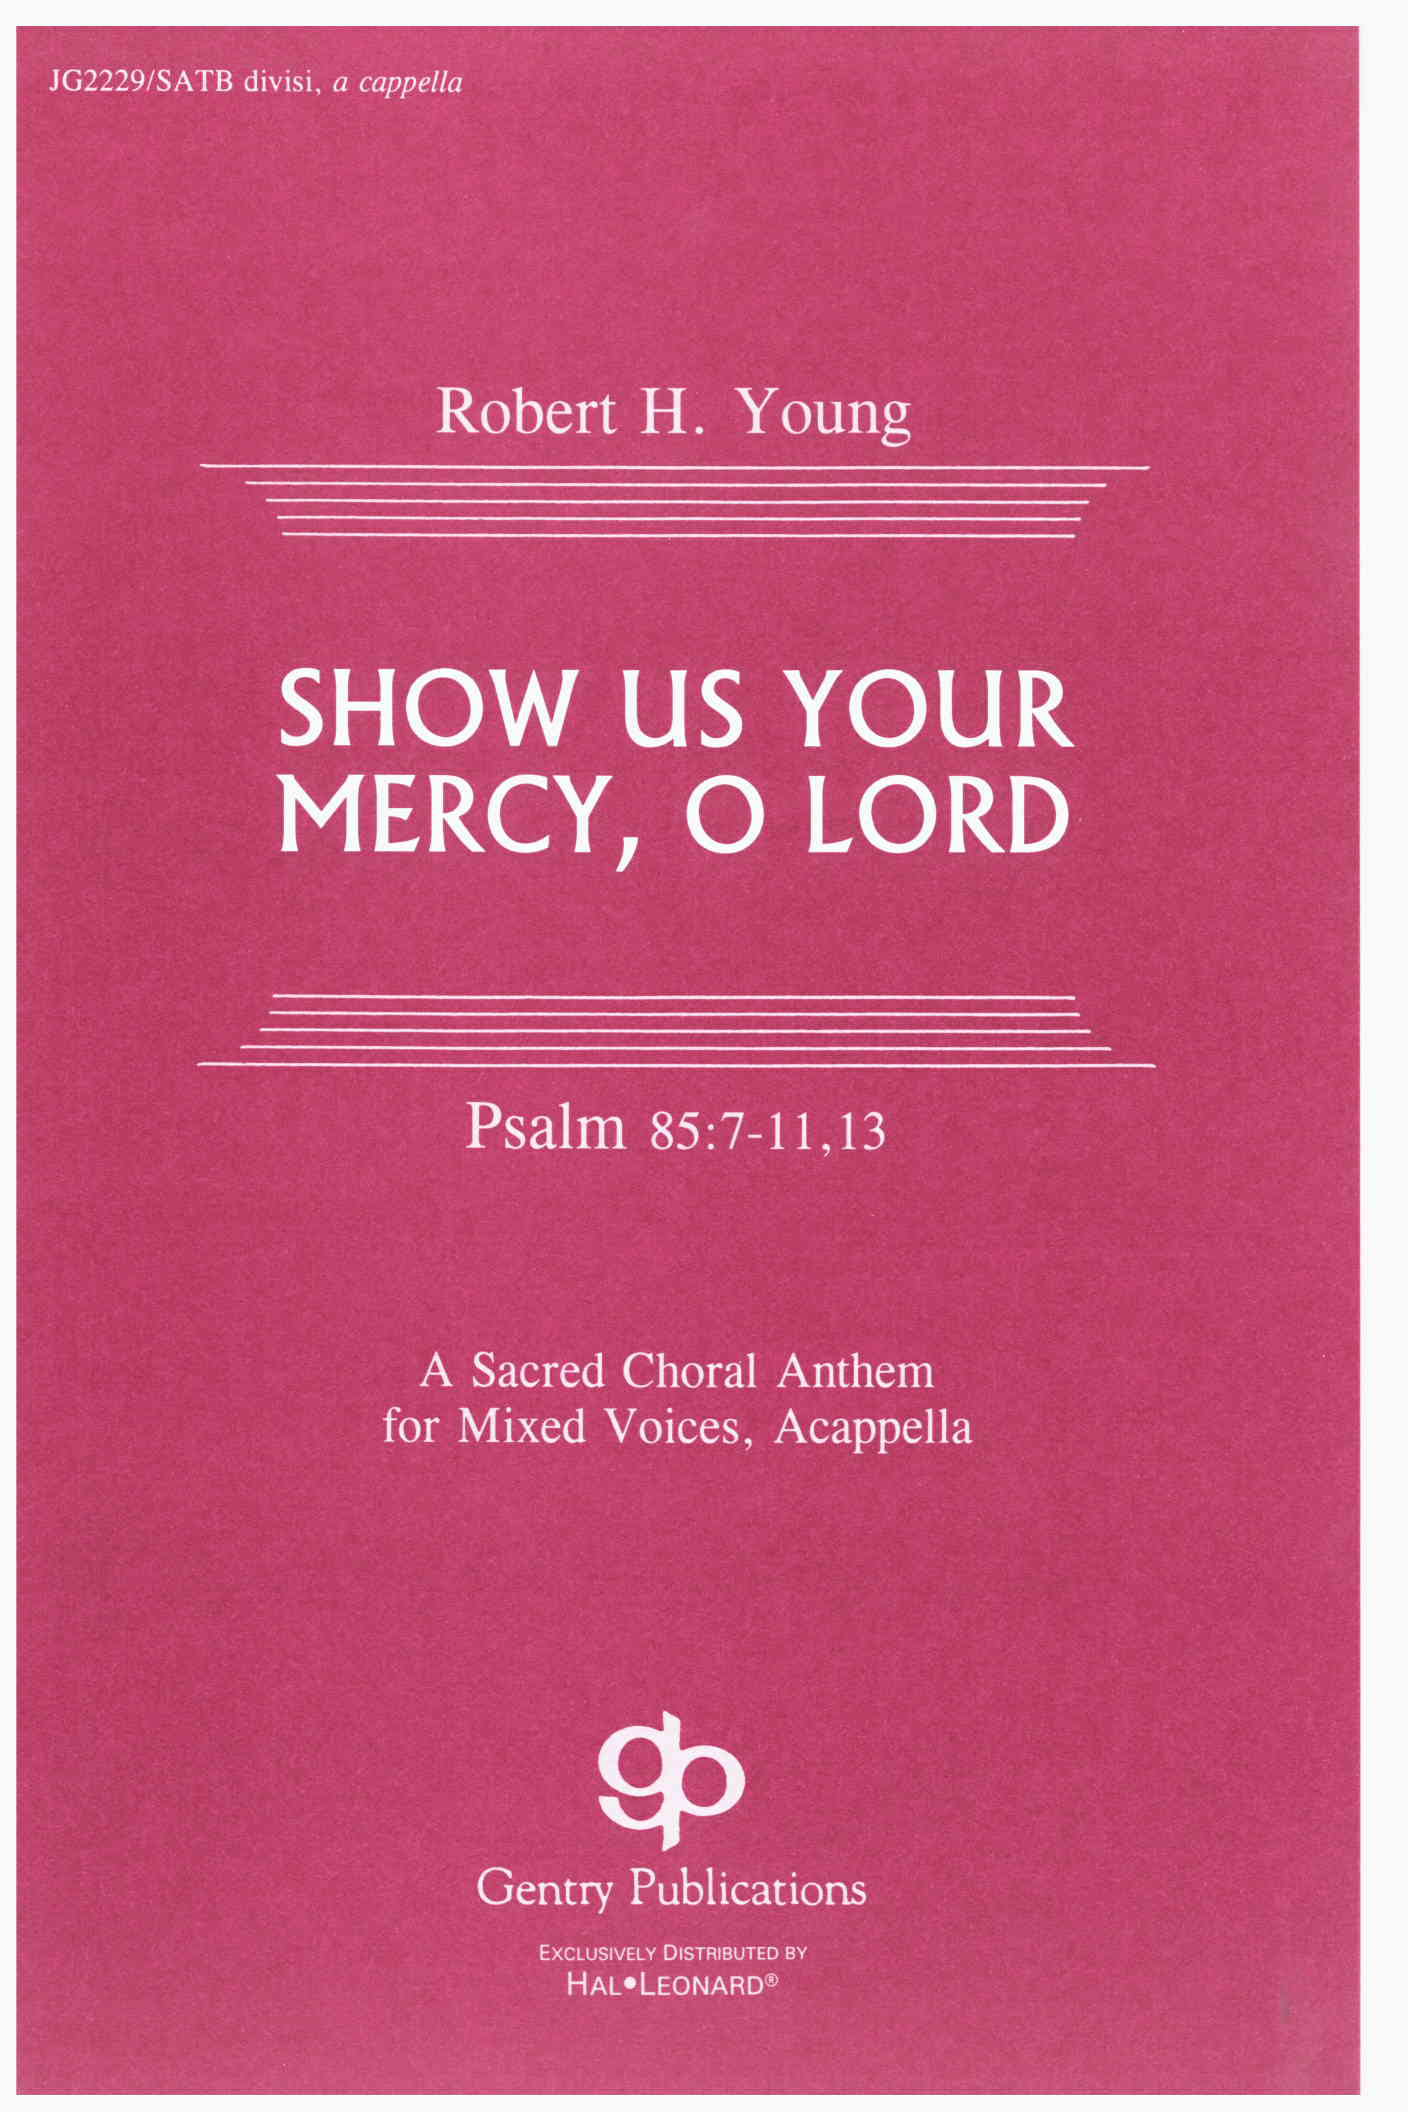 Show Us Your Mercy, O Lord